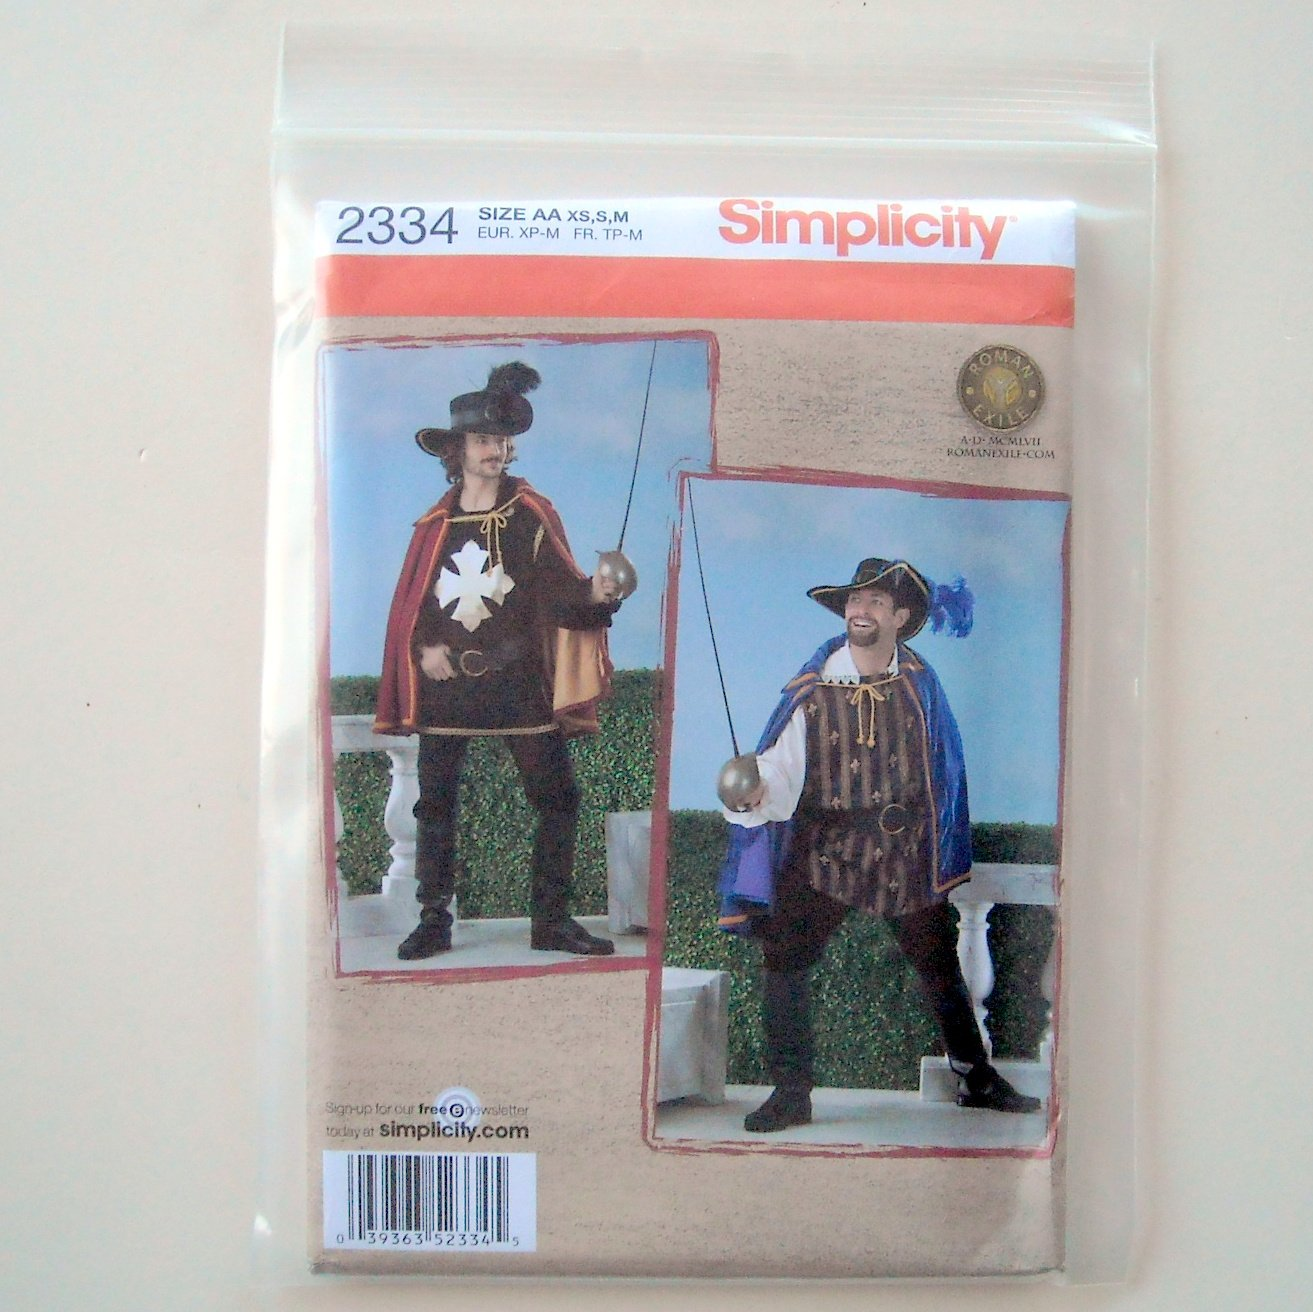 Mens Musketeer Costume Cape Shirt Tabard Hat Belt Size XS - M Simplicity Sewing Pattern 2334